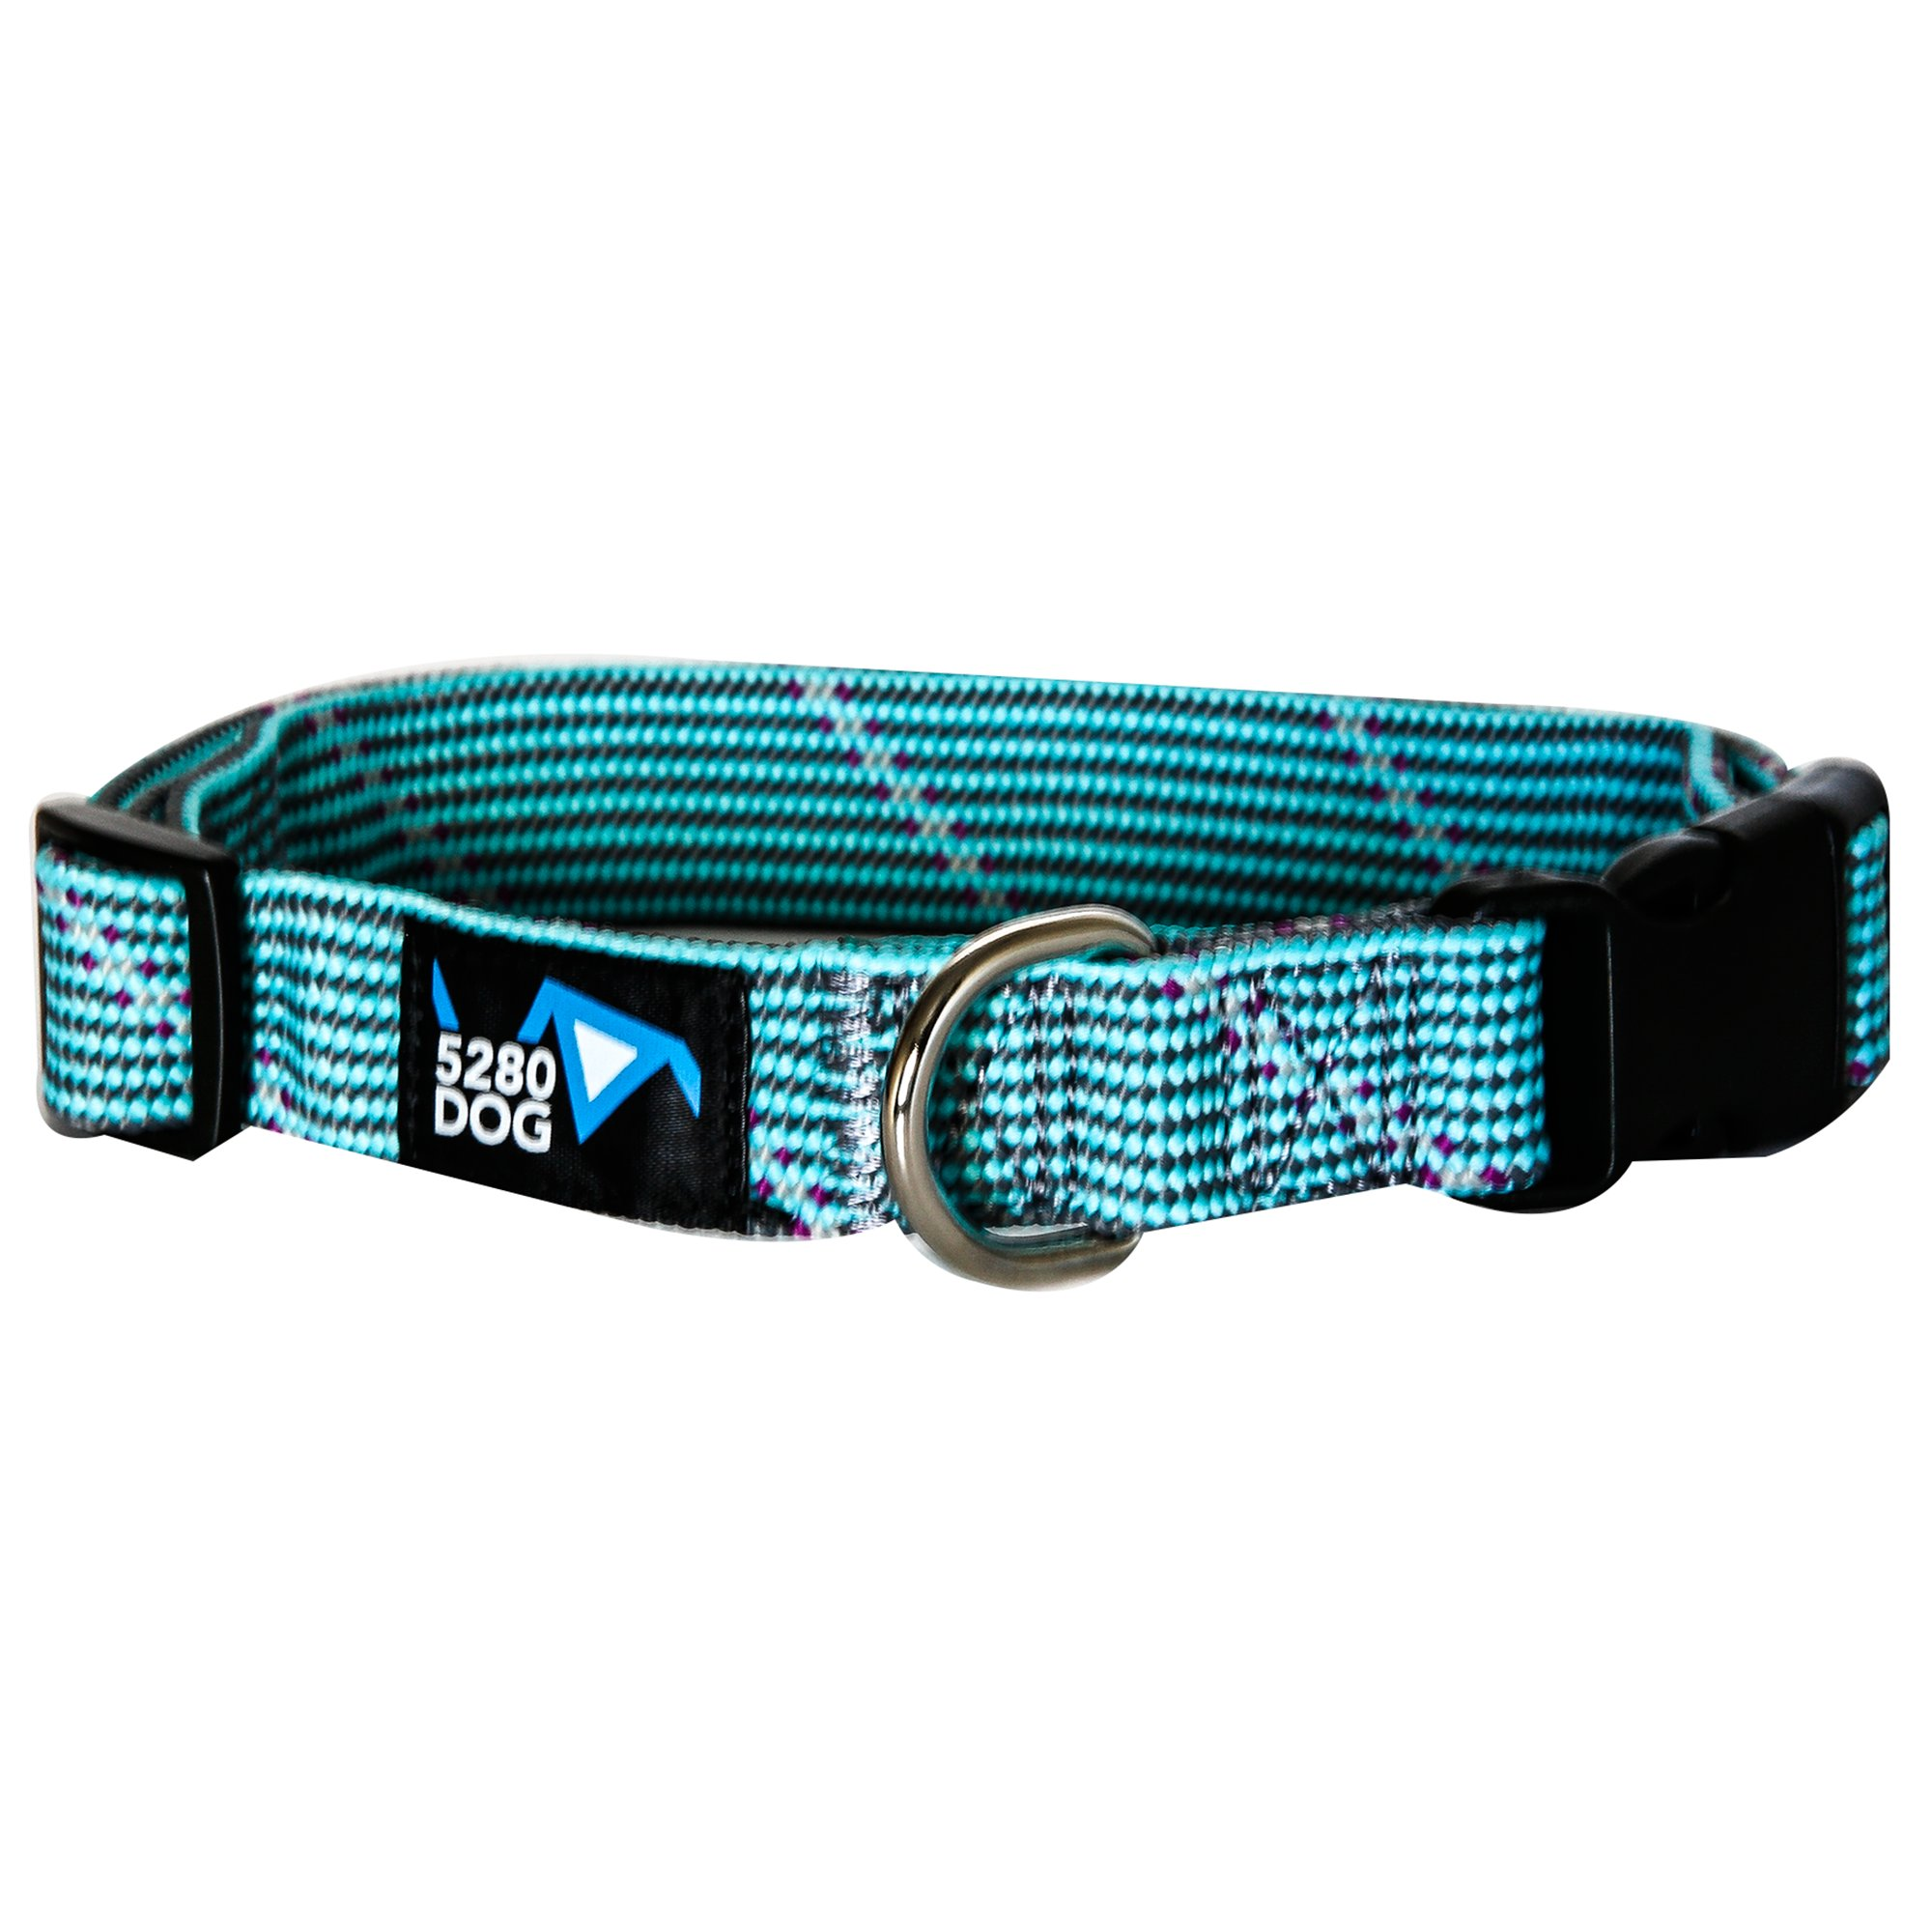 5280DOG Turquoise Braided Collar, Large